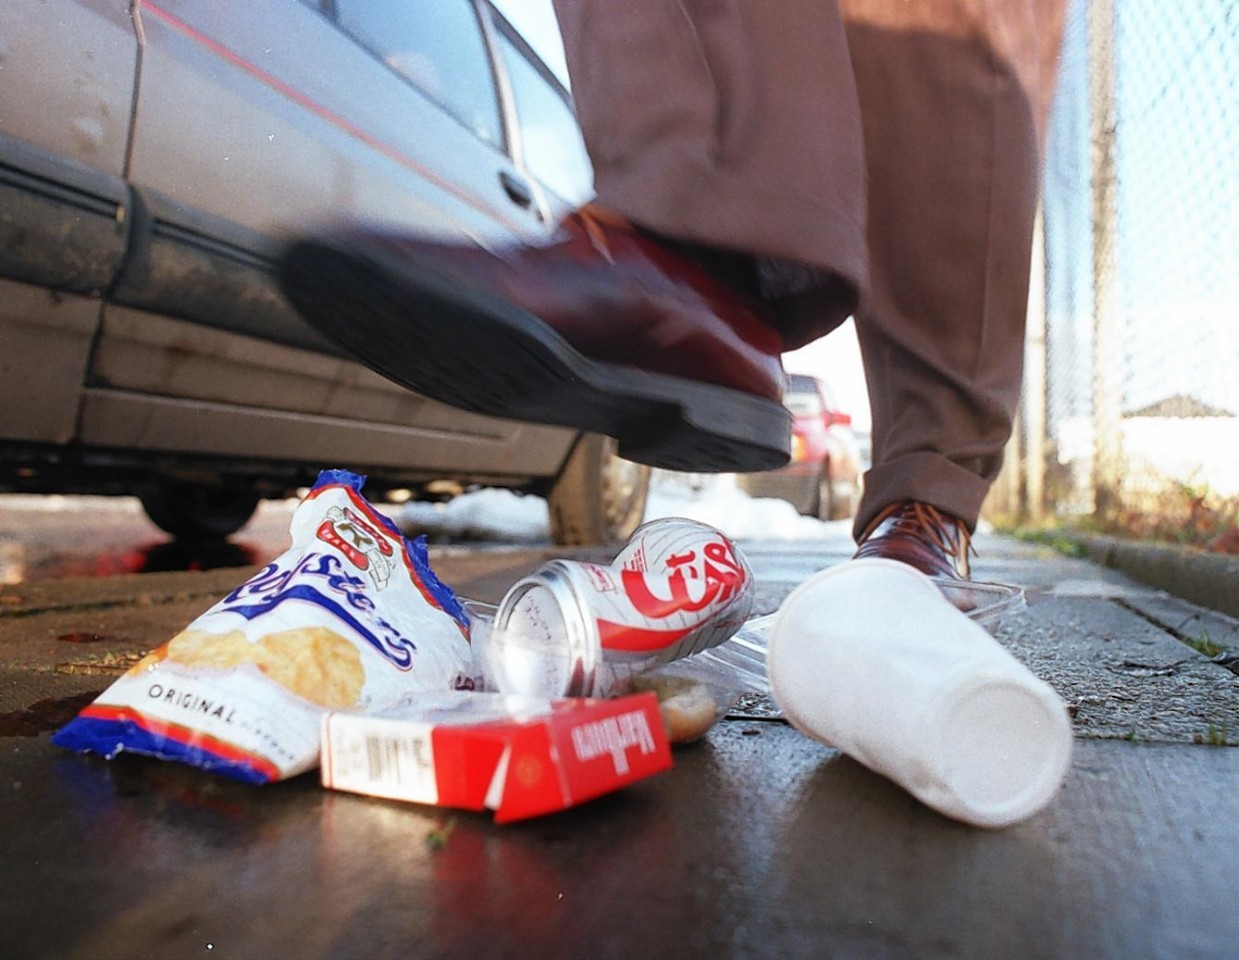 New tool share scheme to help with litter-picks and tidy-ups